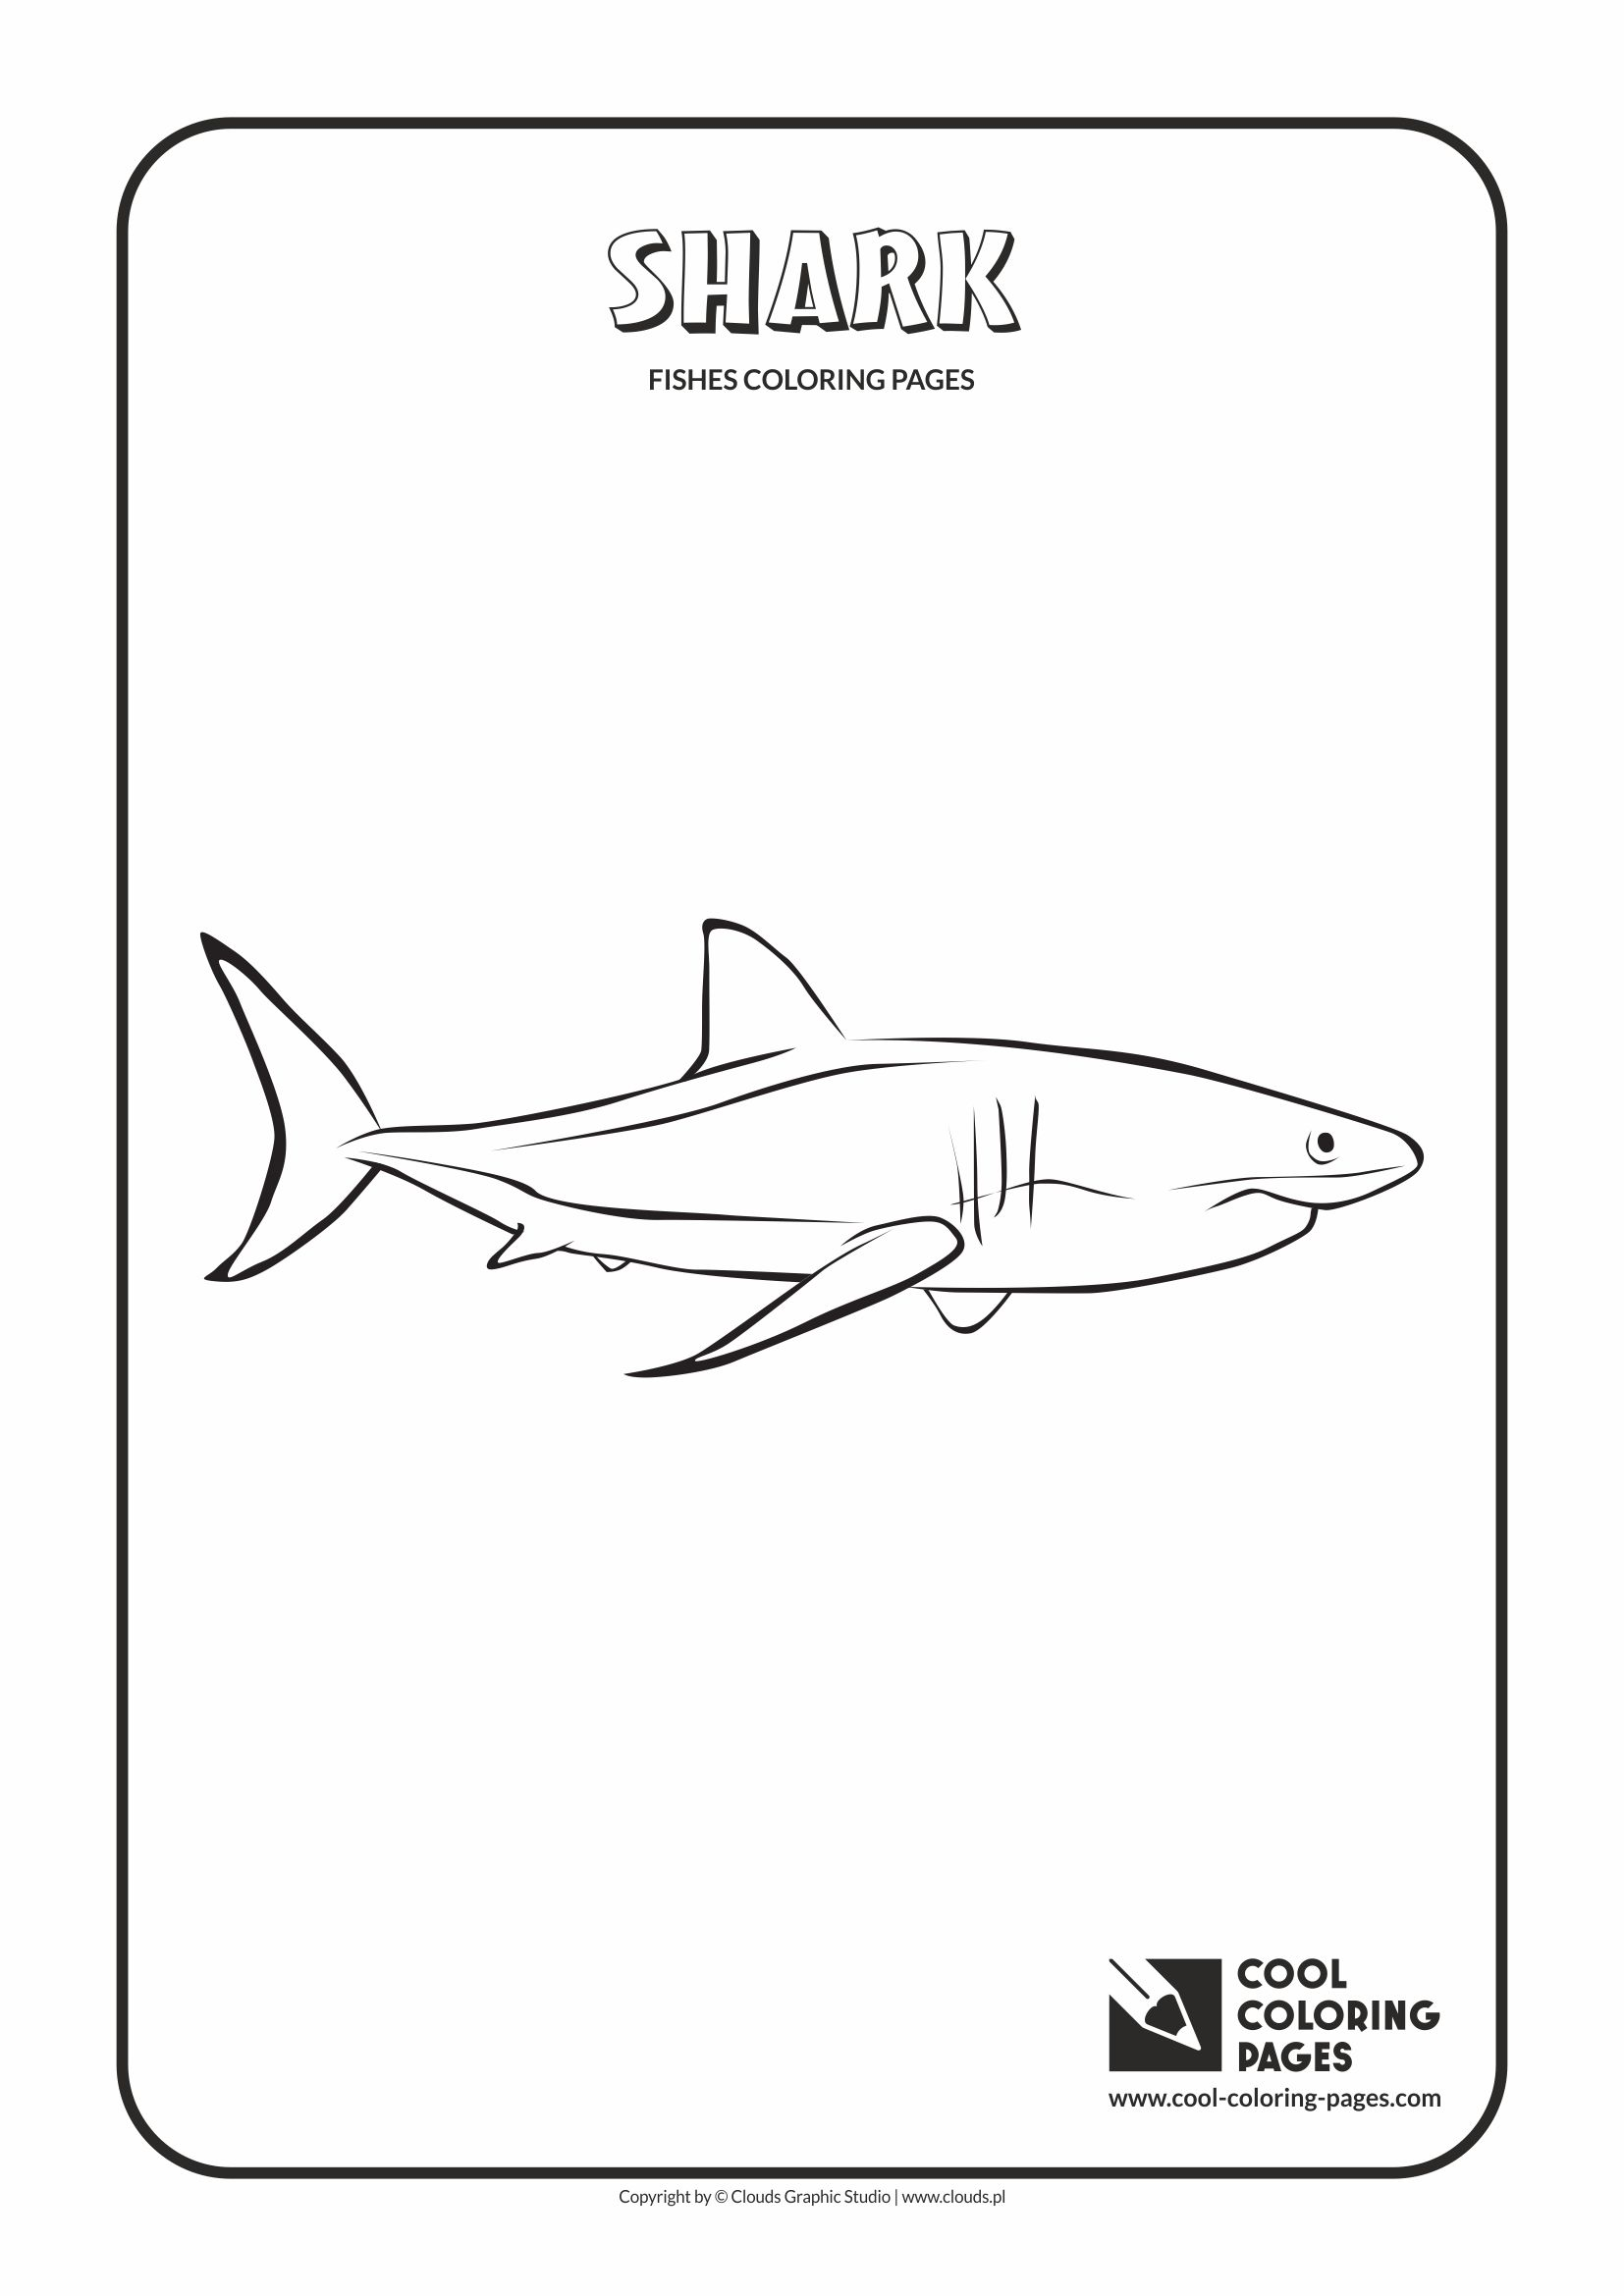 Cool Coloring Pages Shark coloring page - Cool Coloring Pages | Free ...